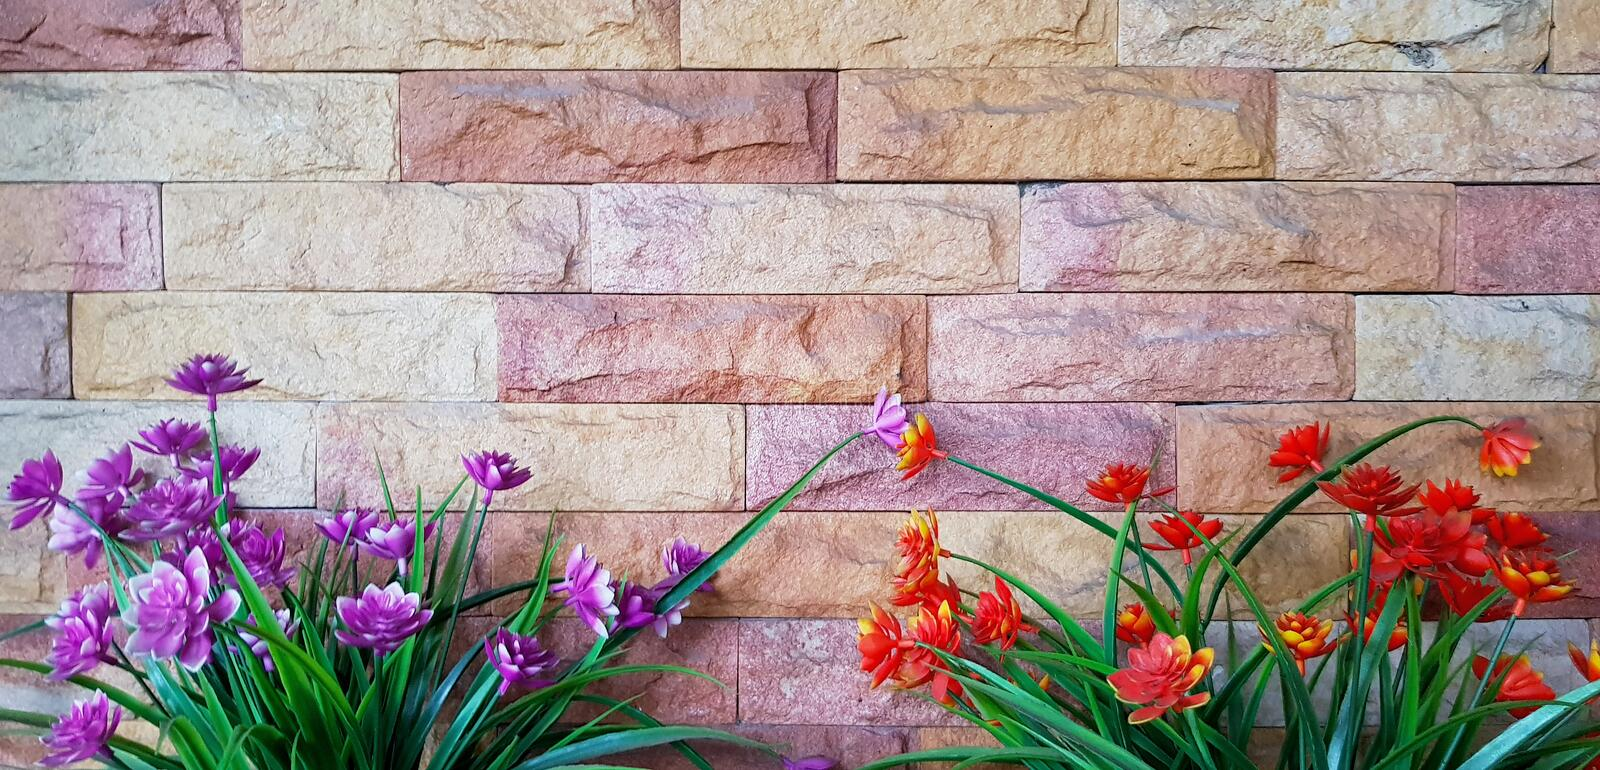 Beautiful orange or red flower and purple or violet flower blooming on grunge brick wall or wallpaper royalty free stock photo